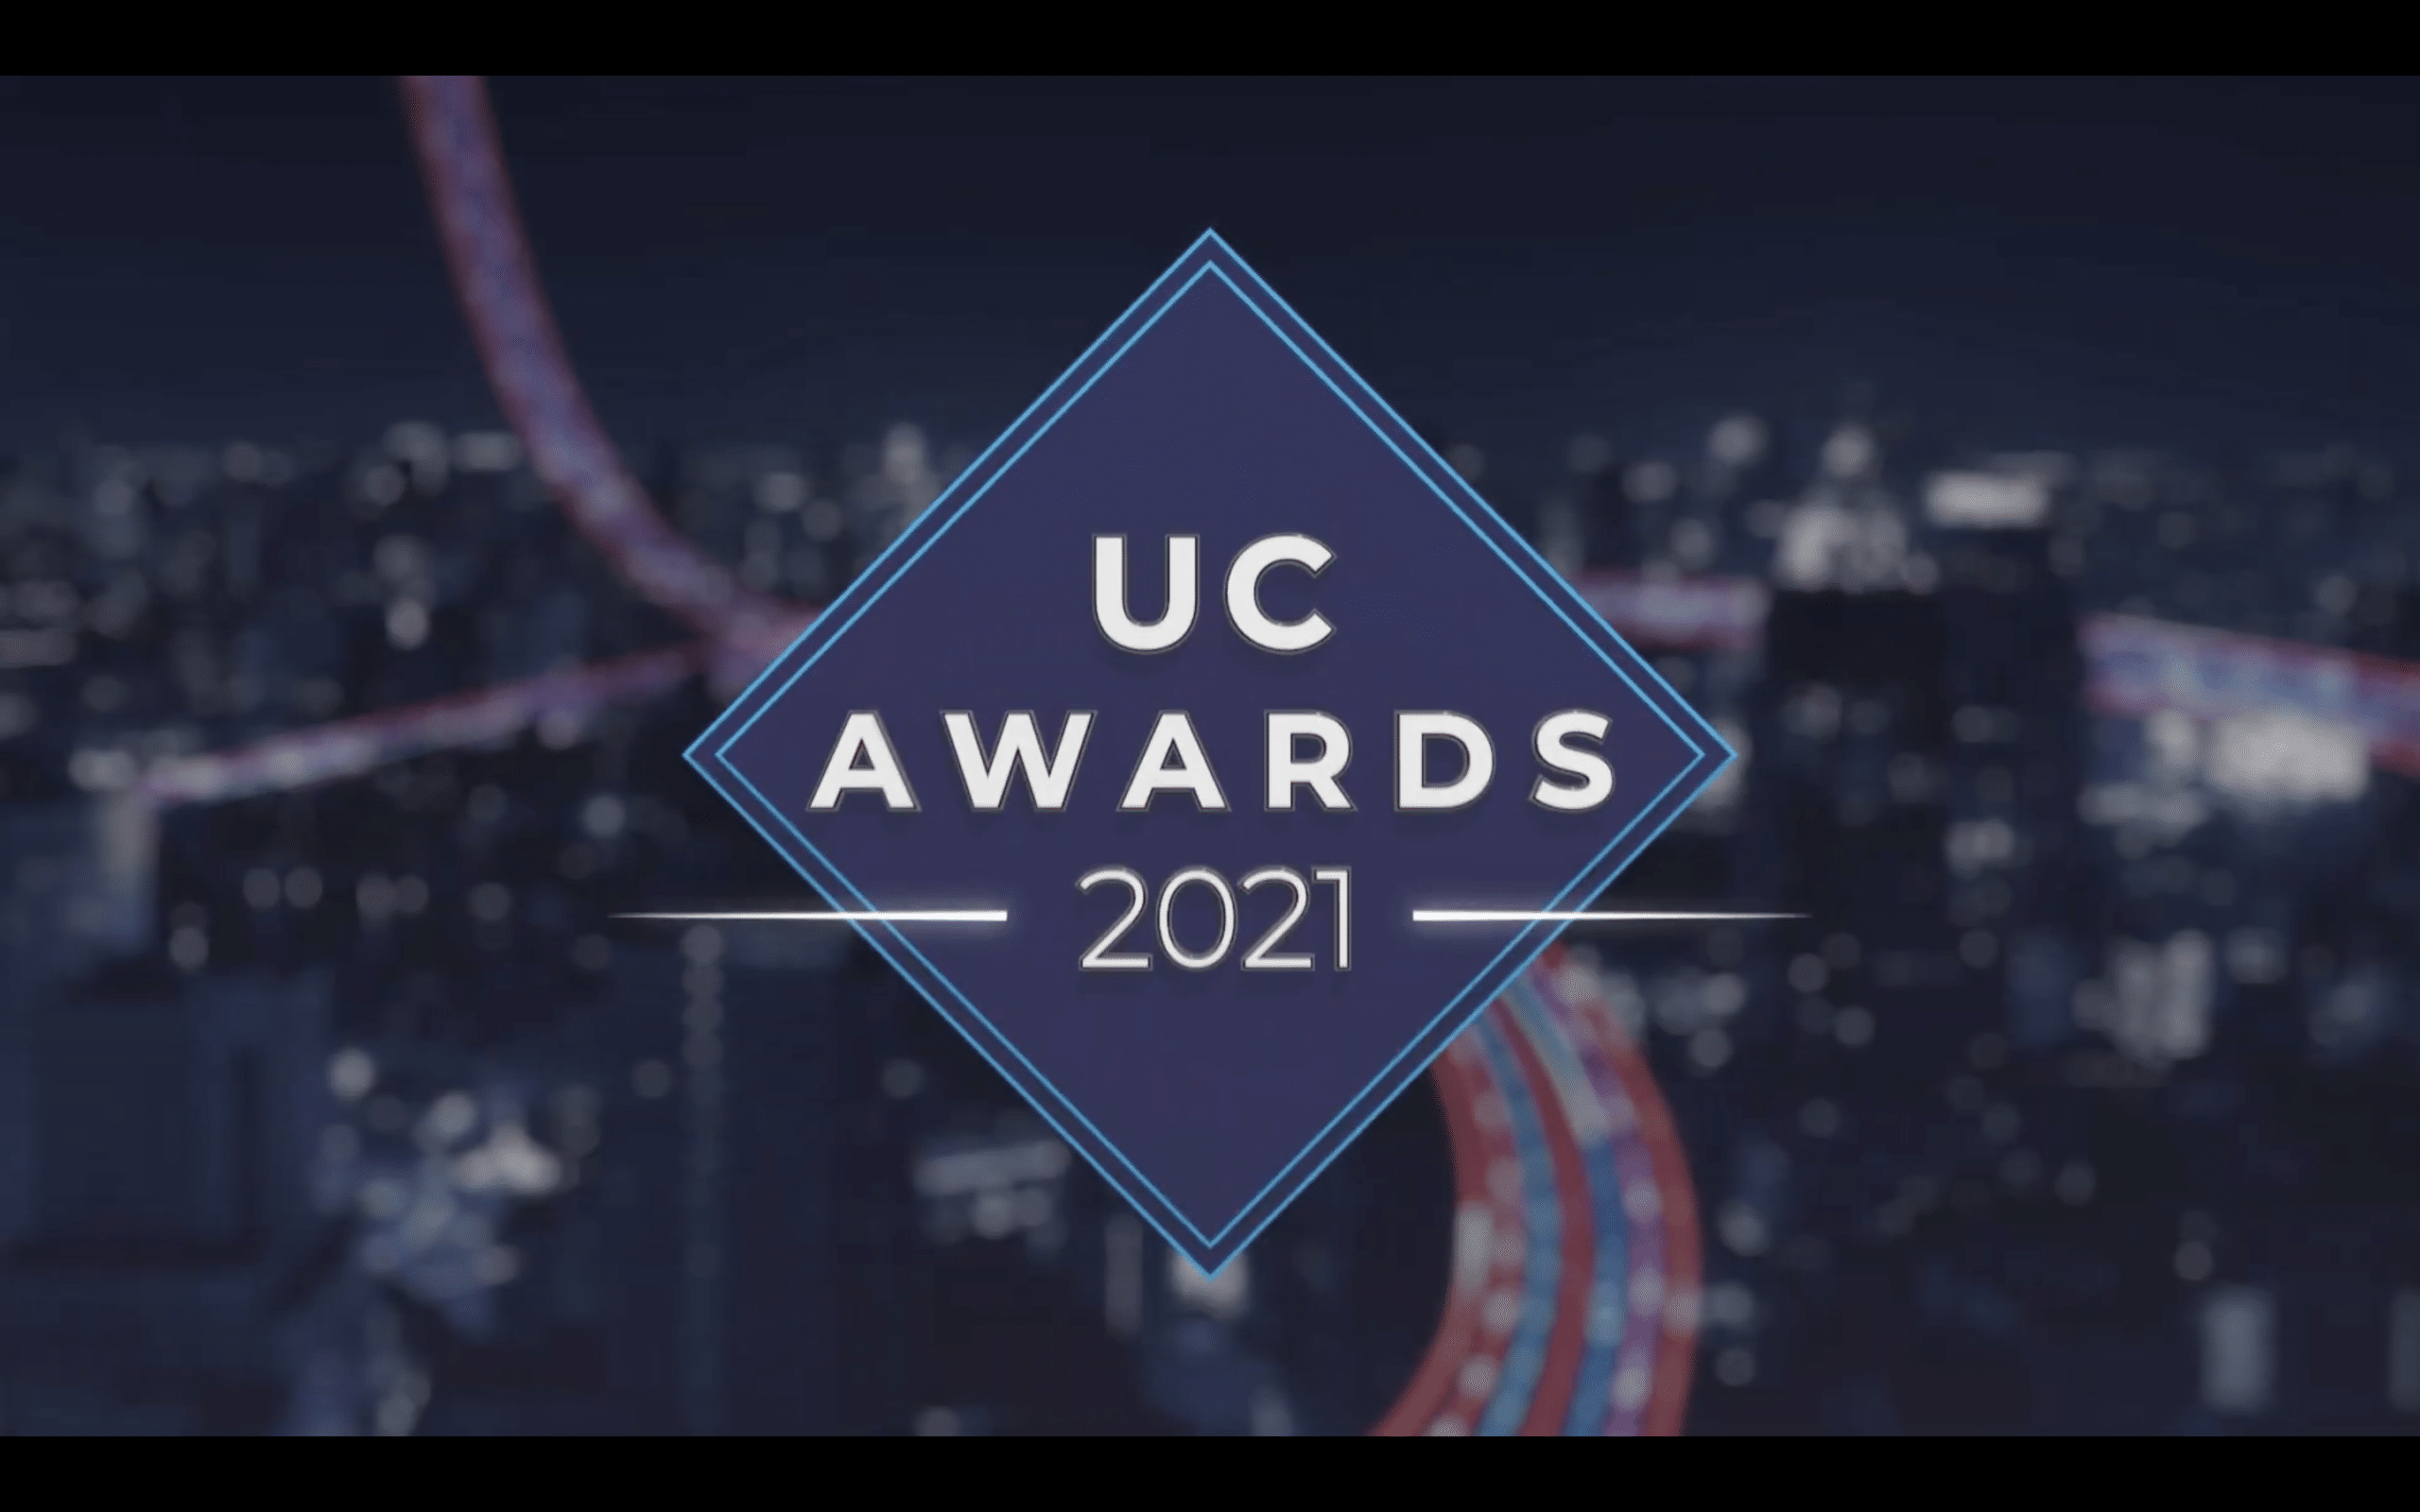 UC Today: UC Awards 2021Finalists are Announced